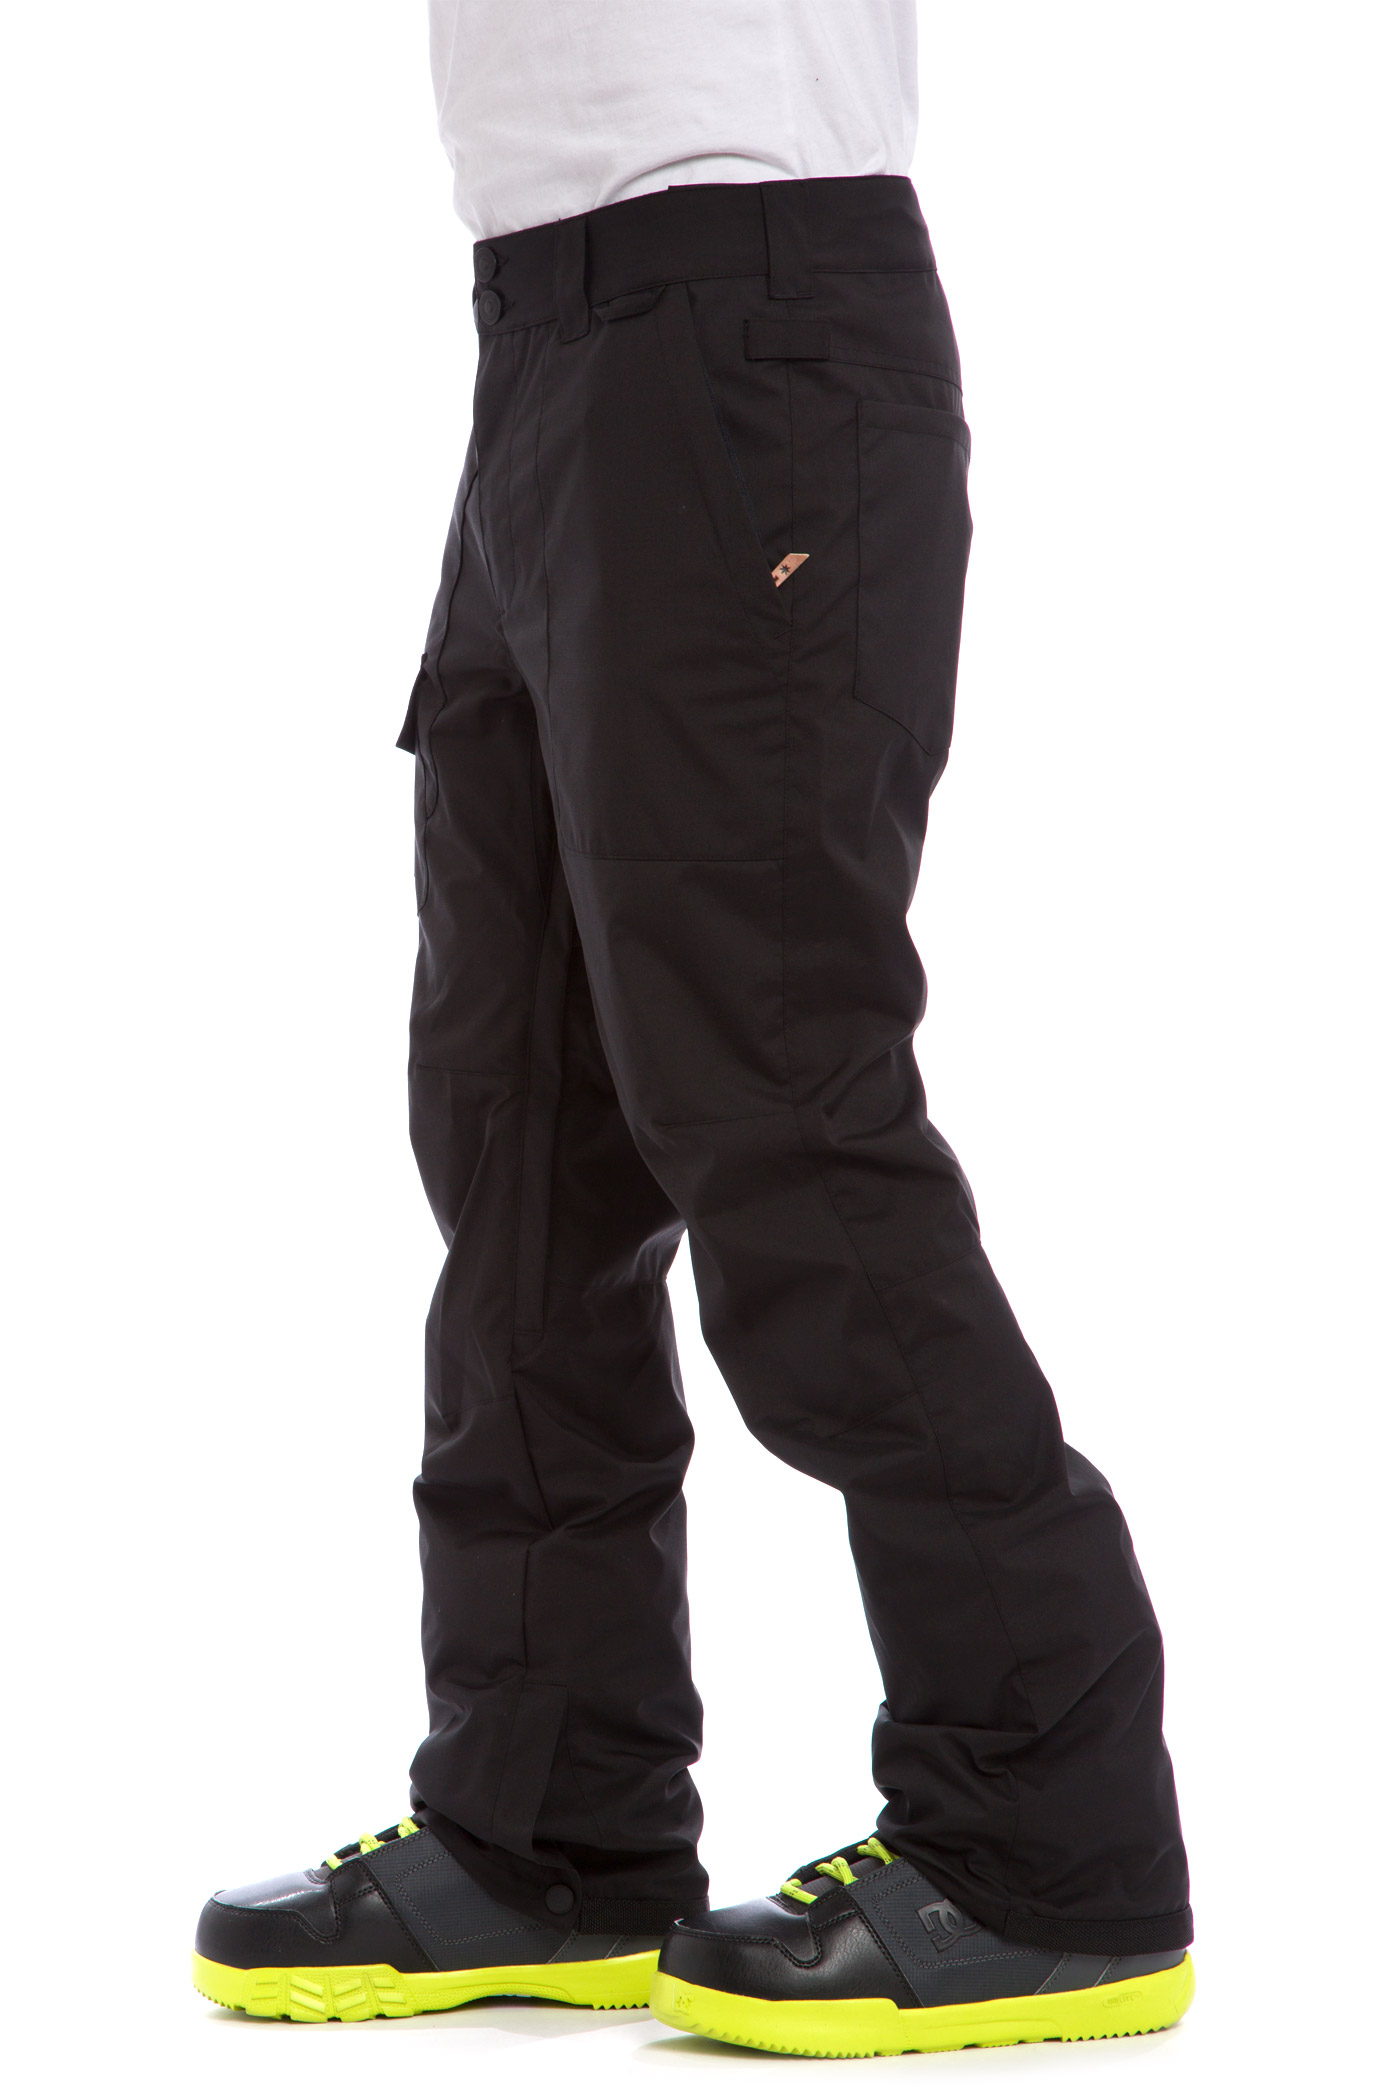 Shop snowboard gear that lets you focus on the pow, not the cold. Our mens snowboard clothing includes everything from snow outfits to beanies!